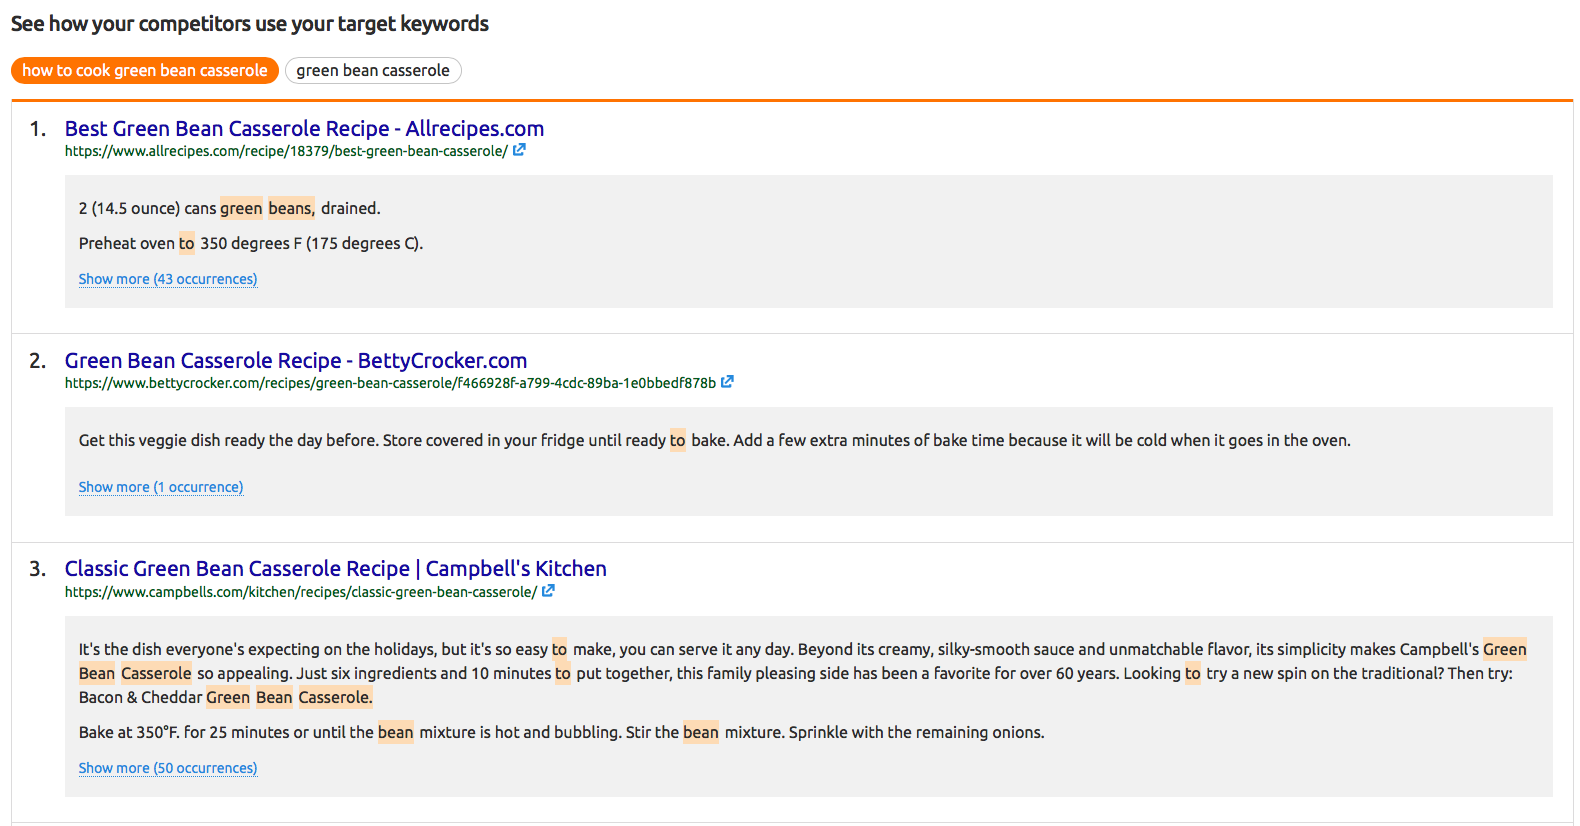 See how your rivals use your target keywords